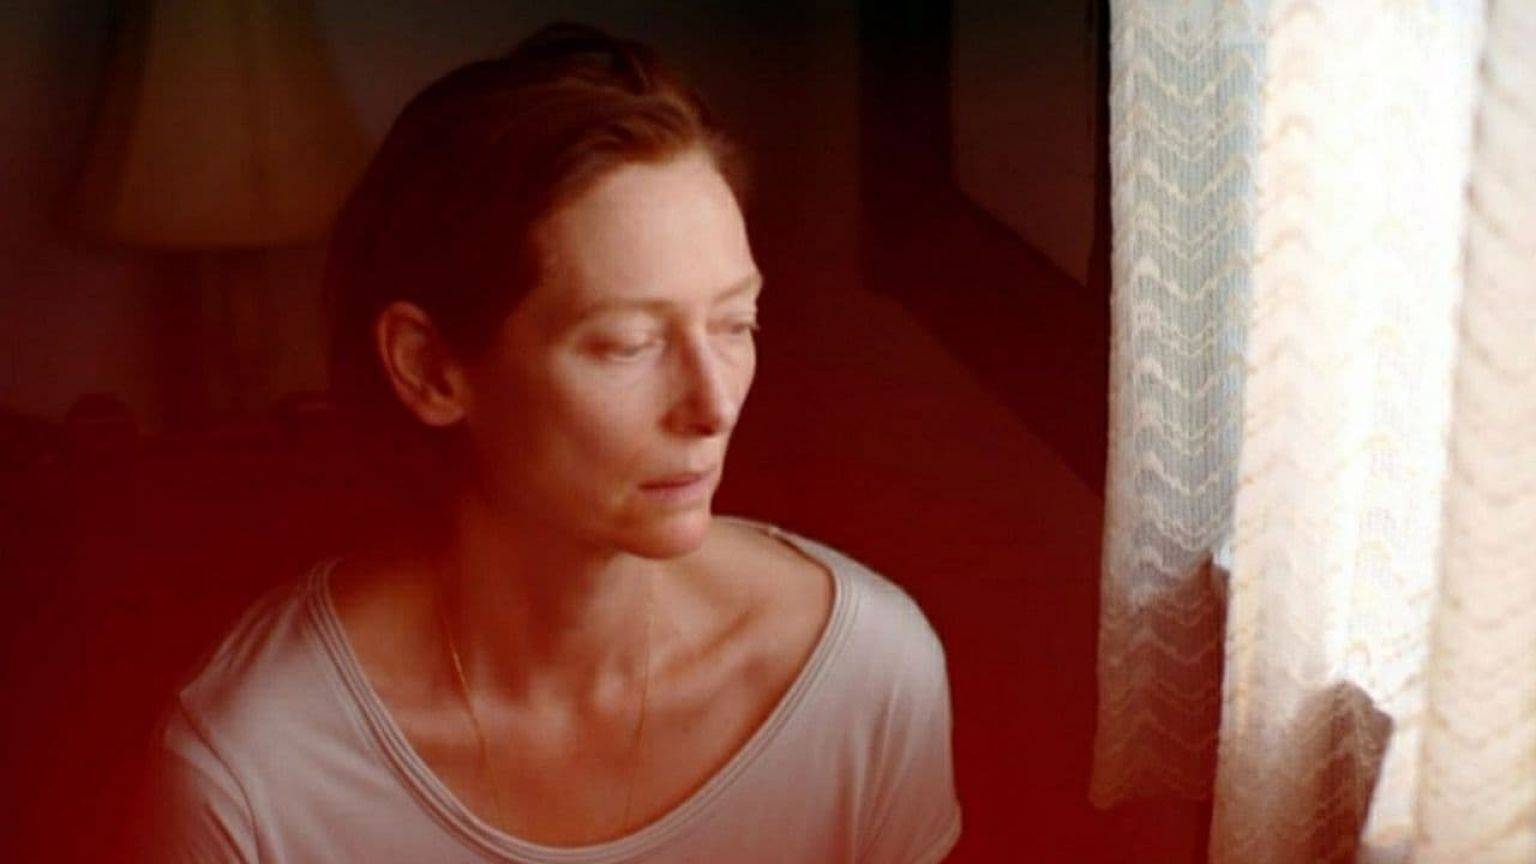 Opnames van 'The Eternal Daughter' met Tilda Swinton afgerond tijdens lockdown